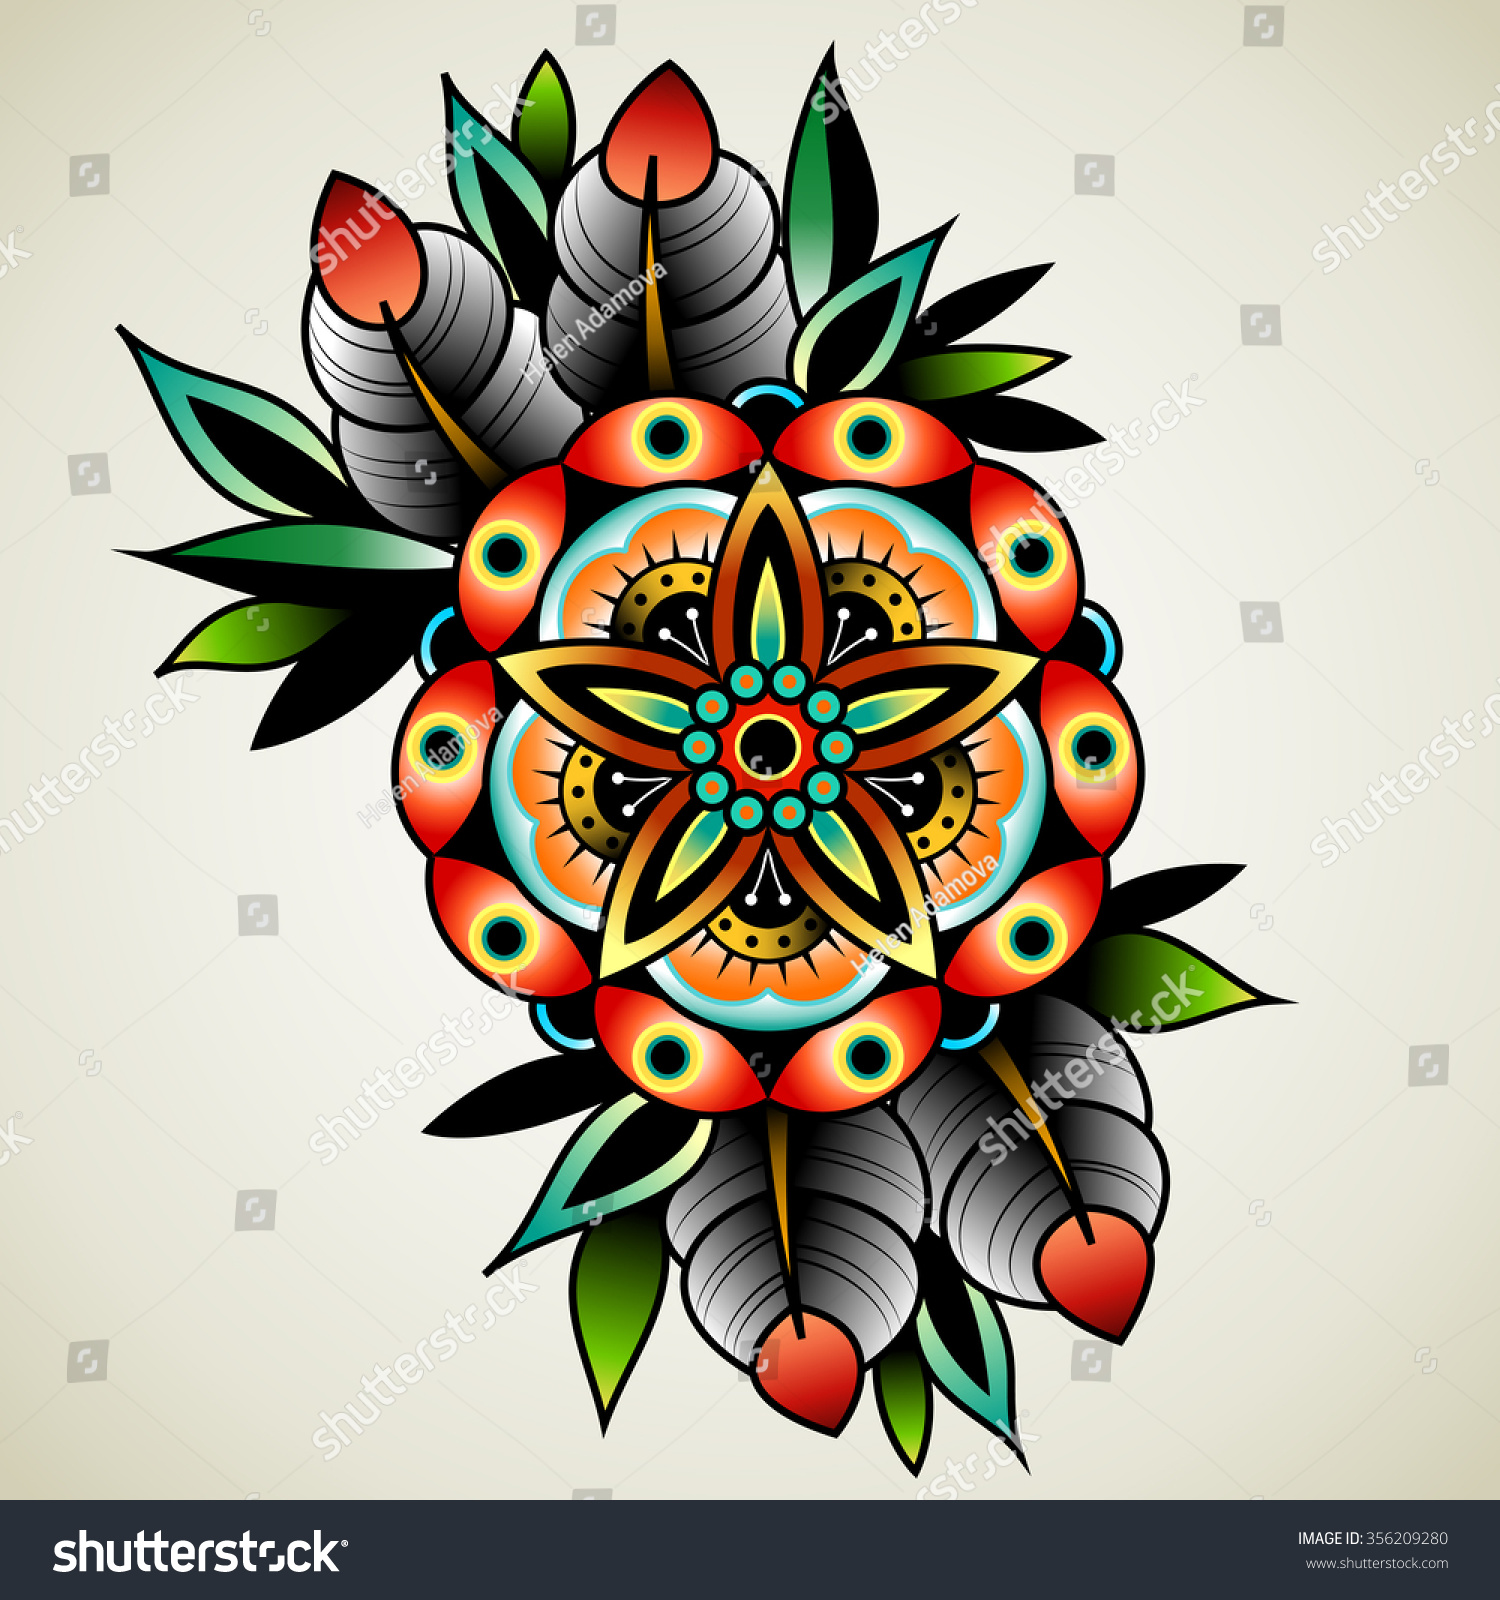 old school tattoo art flowers design stock vector 356209280 shutterstock. Black Bedroom Furniture Sets. Home Design Ideas